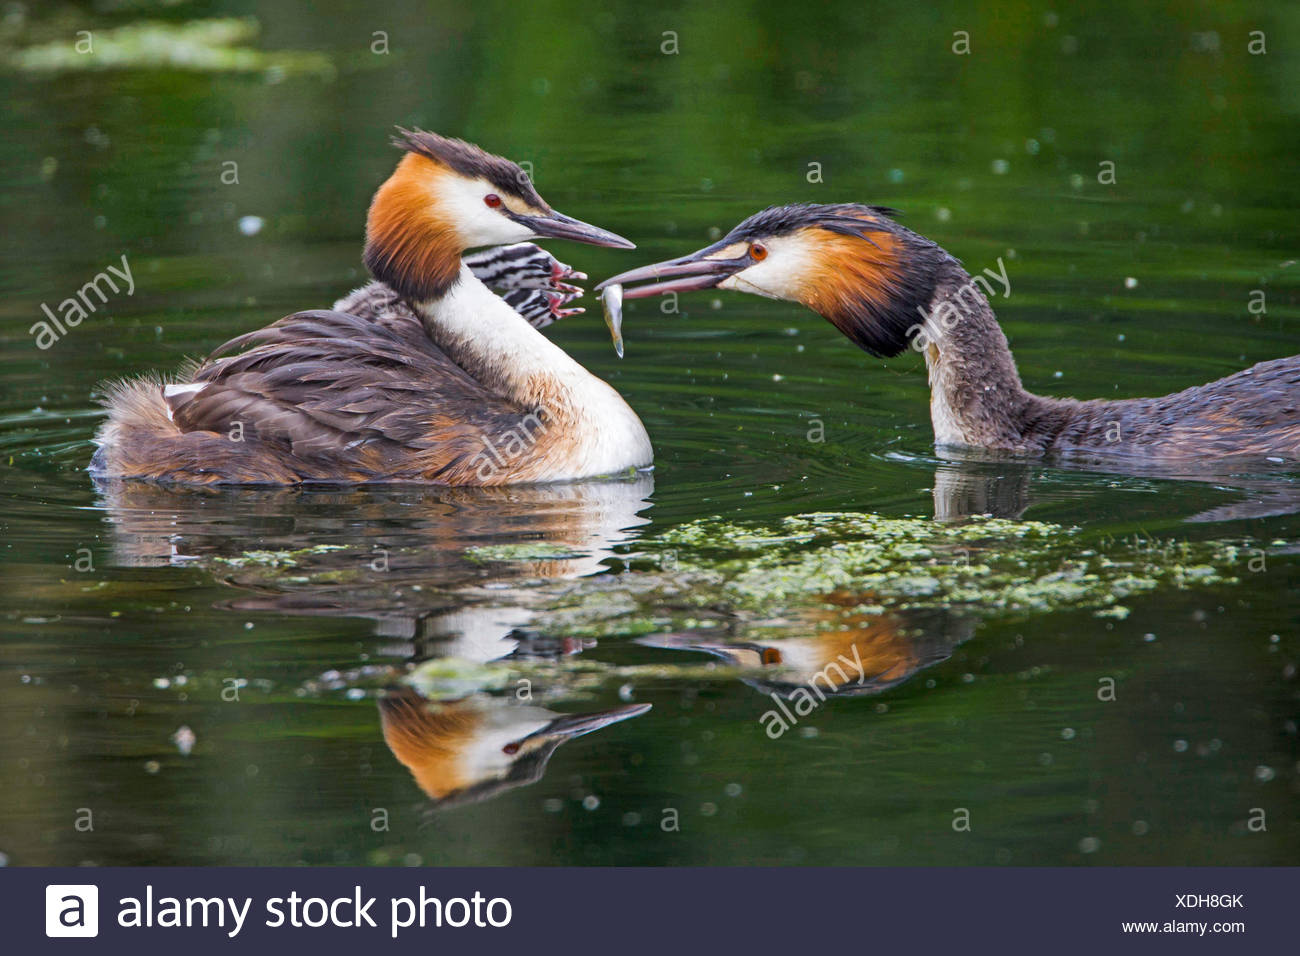 great crested grebe (Podiceps cristatus), feeding of the chicks, Germany Stock Photo